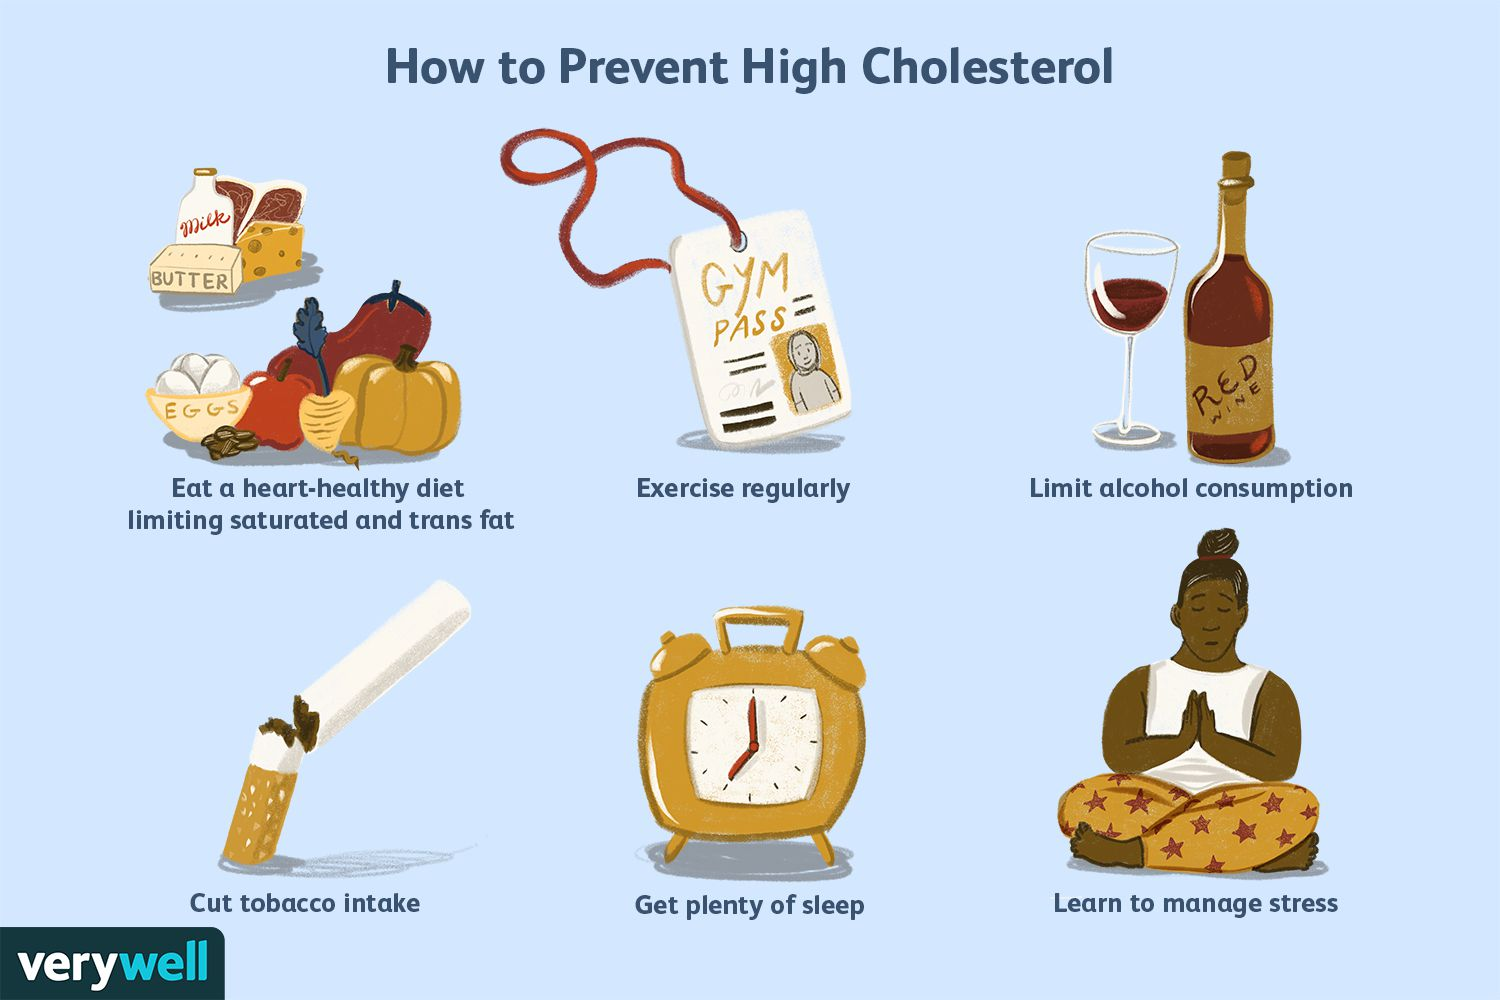 How to Prevent High Cholesterol